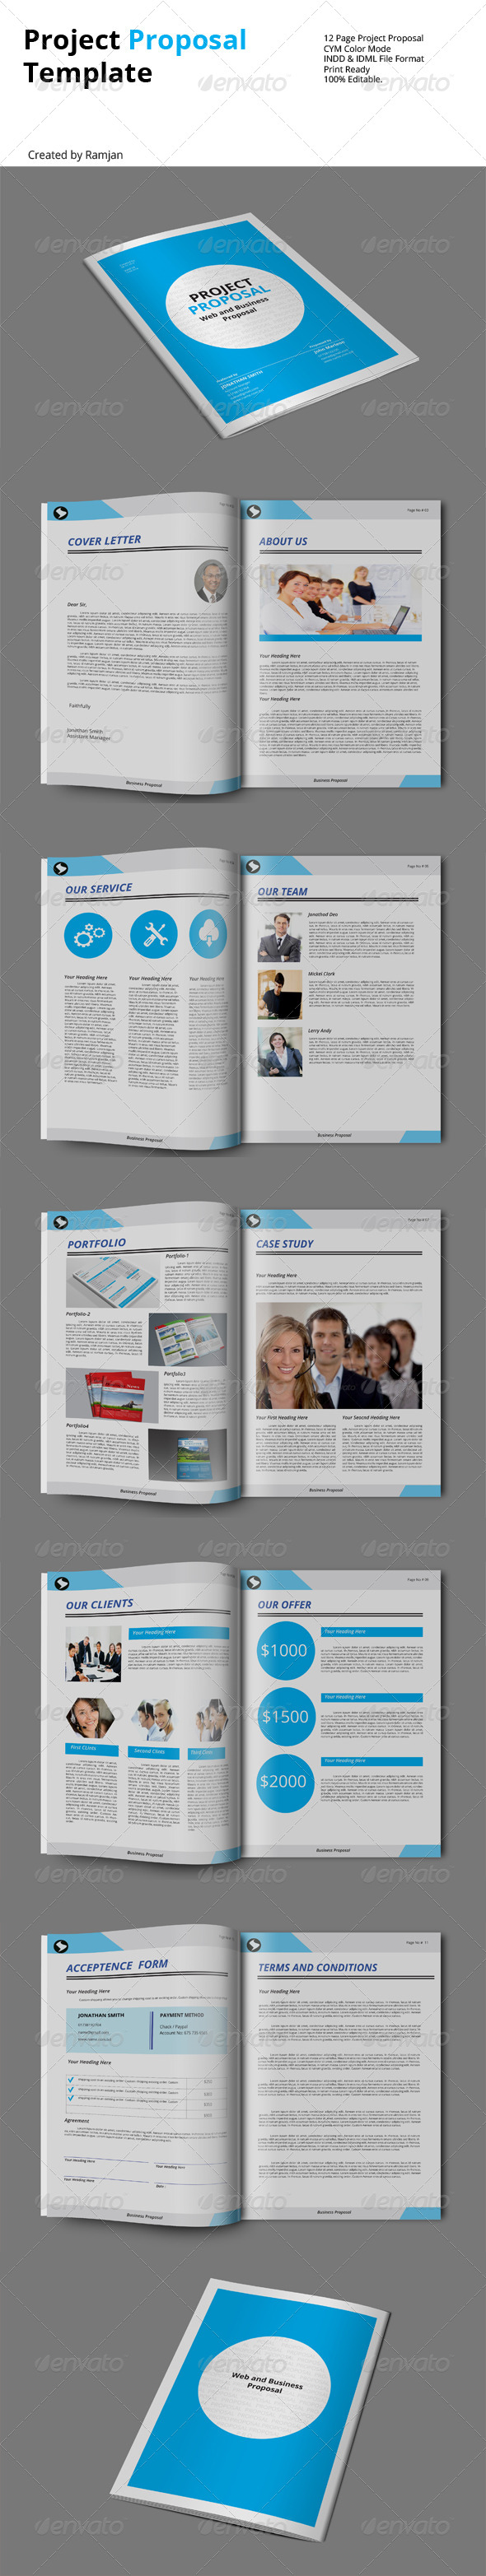 GraphicRiver Project Proposal Template 8466948